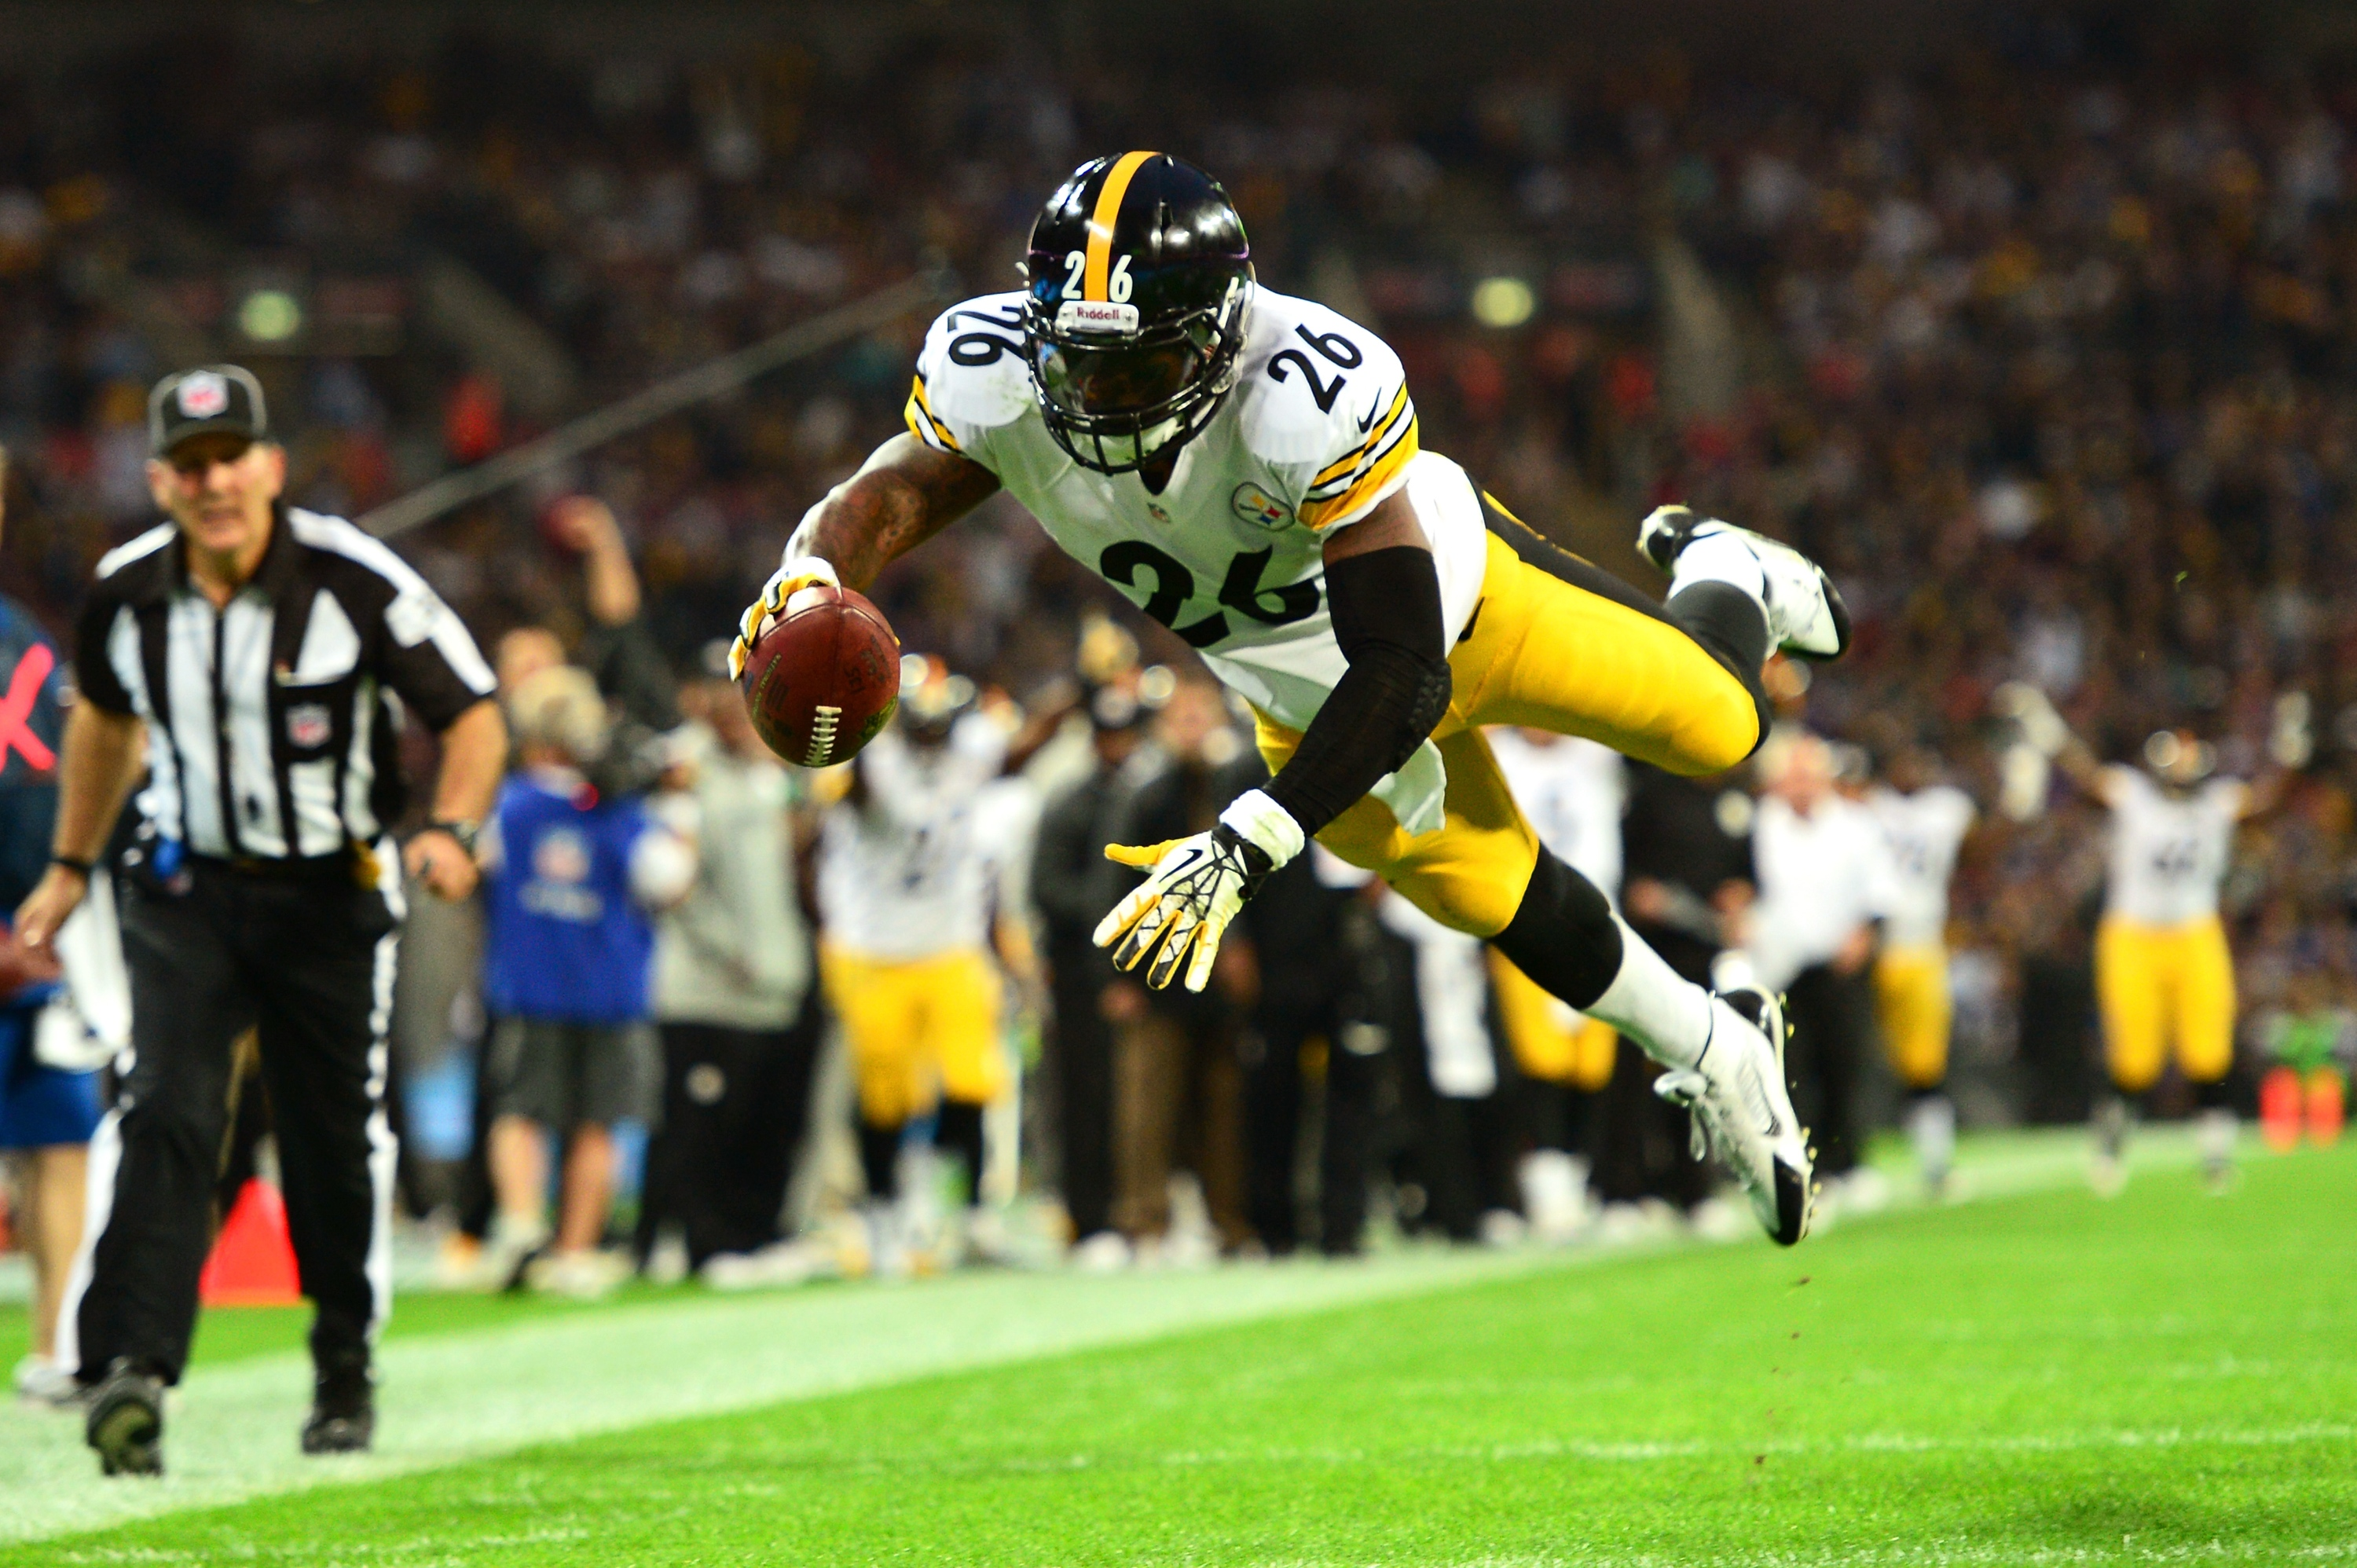 It didn't take long for Le'Veon Bell's NFL career to take flight. . (Getty)